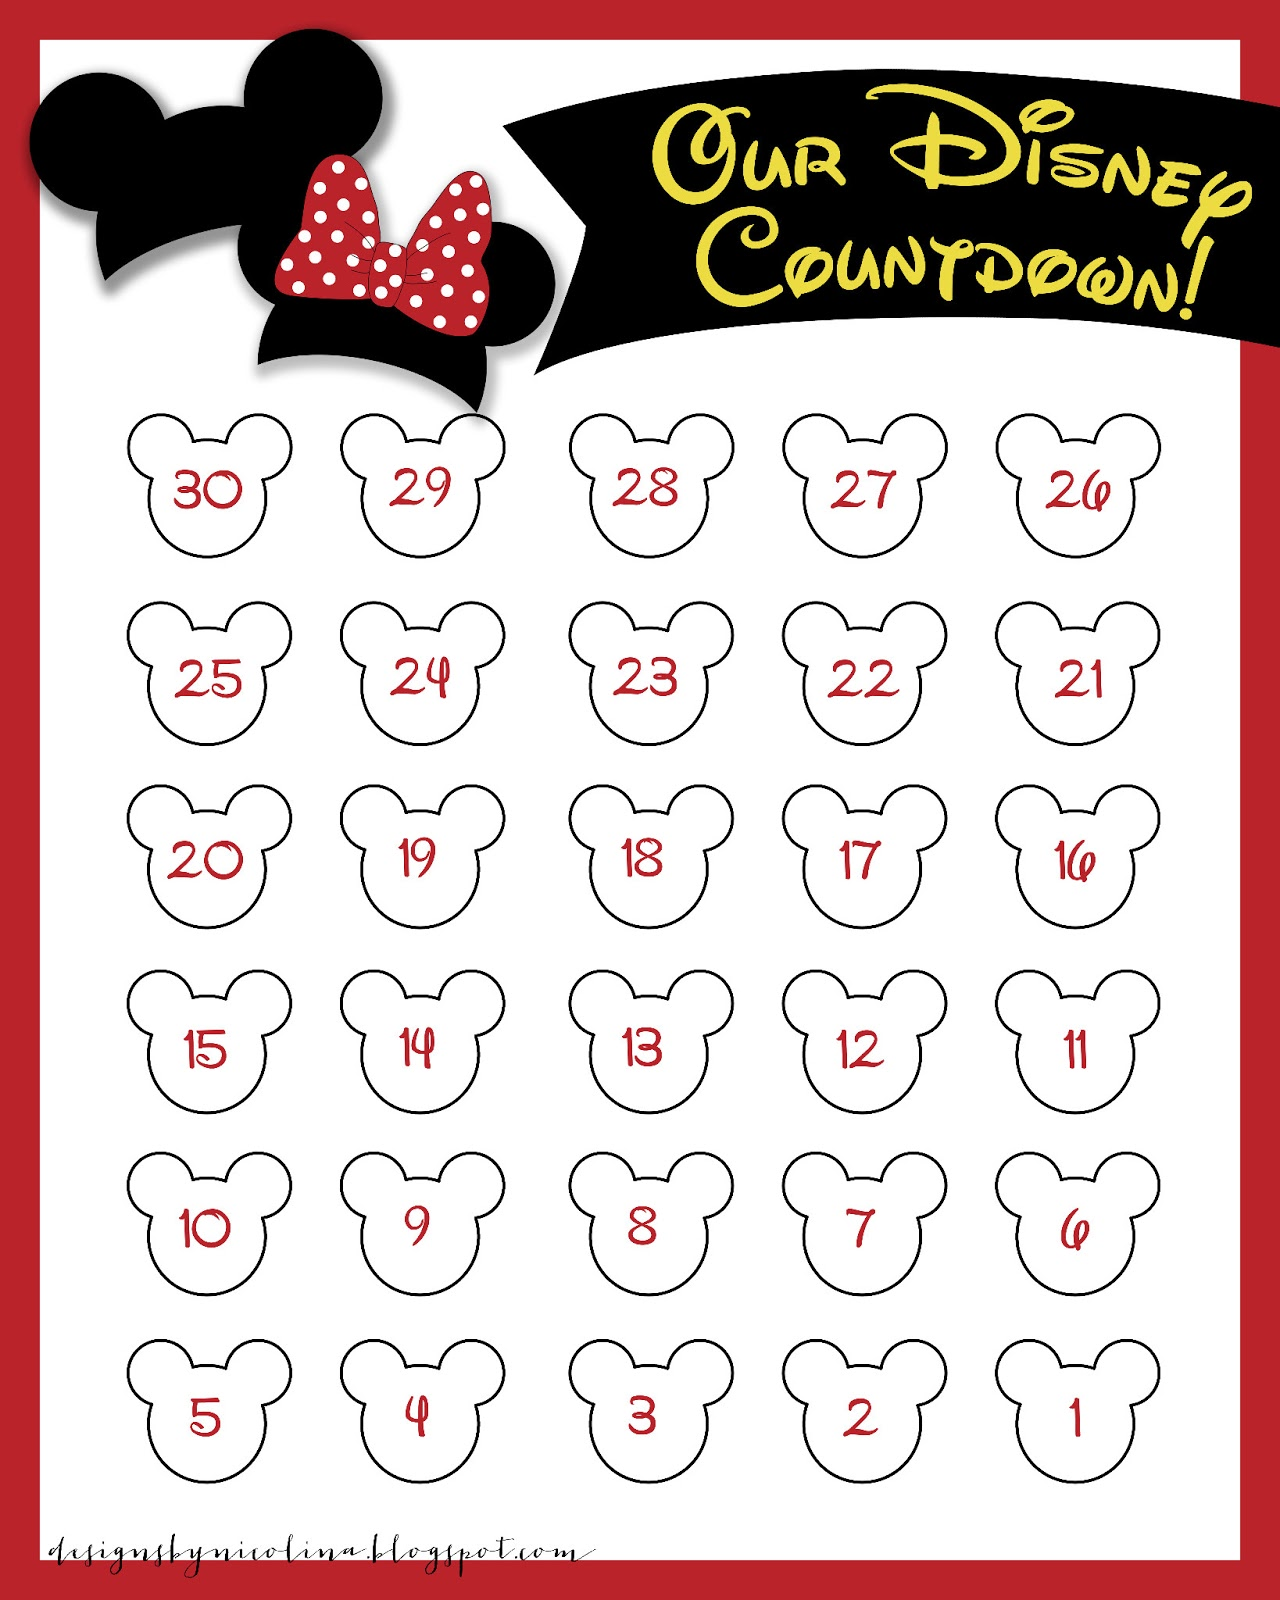 9 Images of Countdown Printable Template